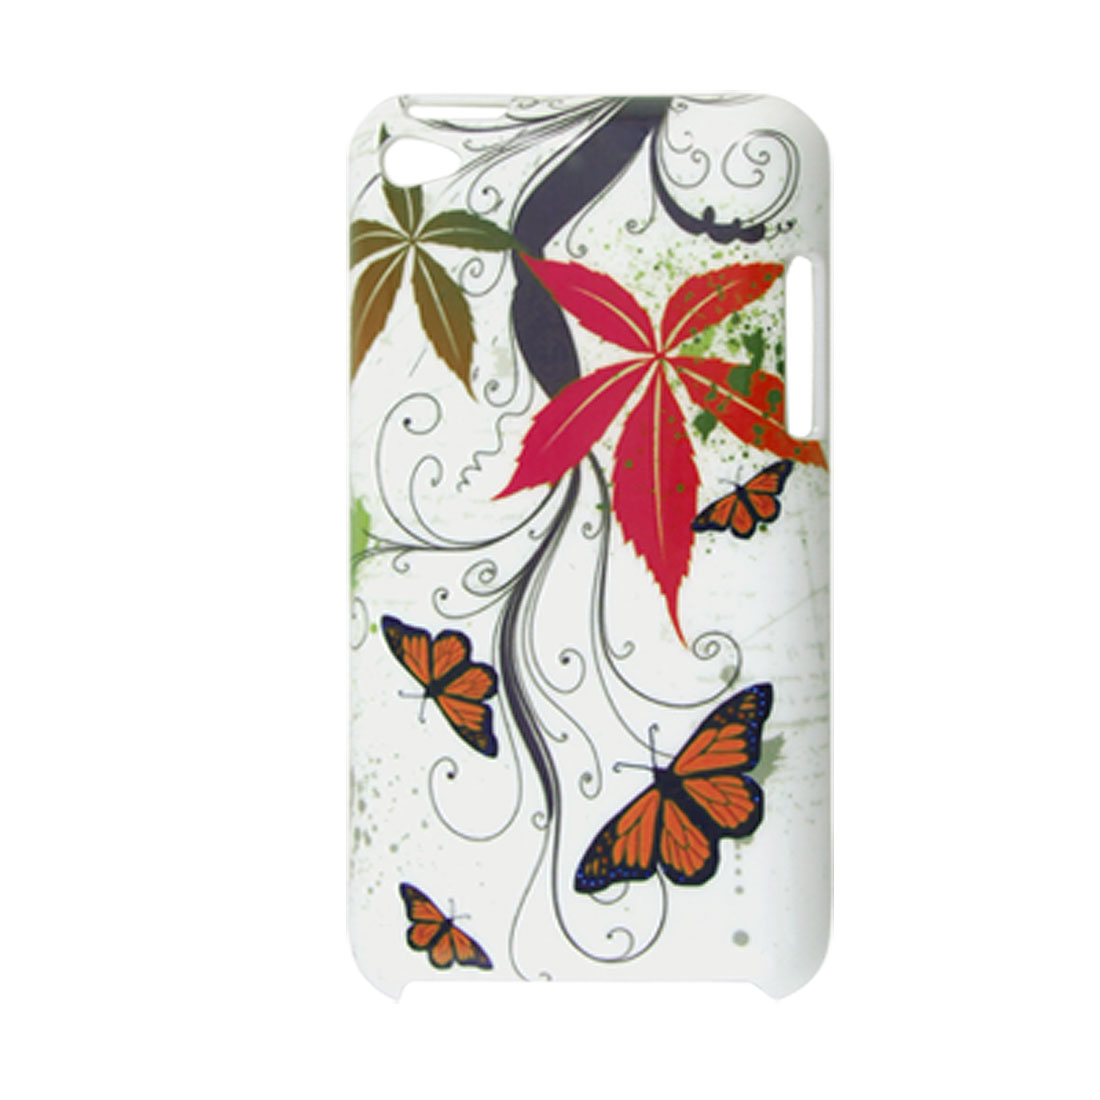 Colorful Butterfly Leaf Pattern Plastic Cover for iPod Touch 4G